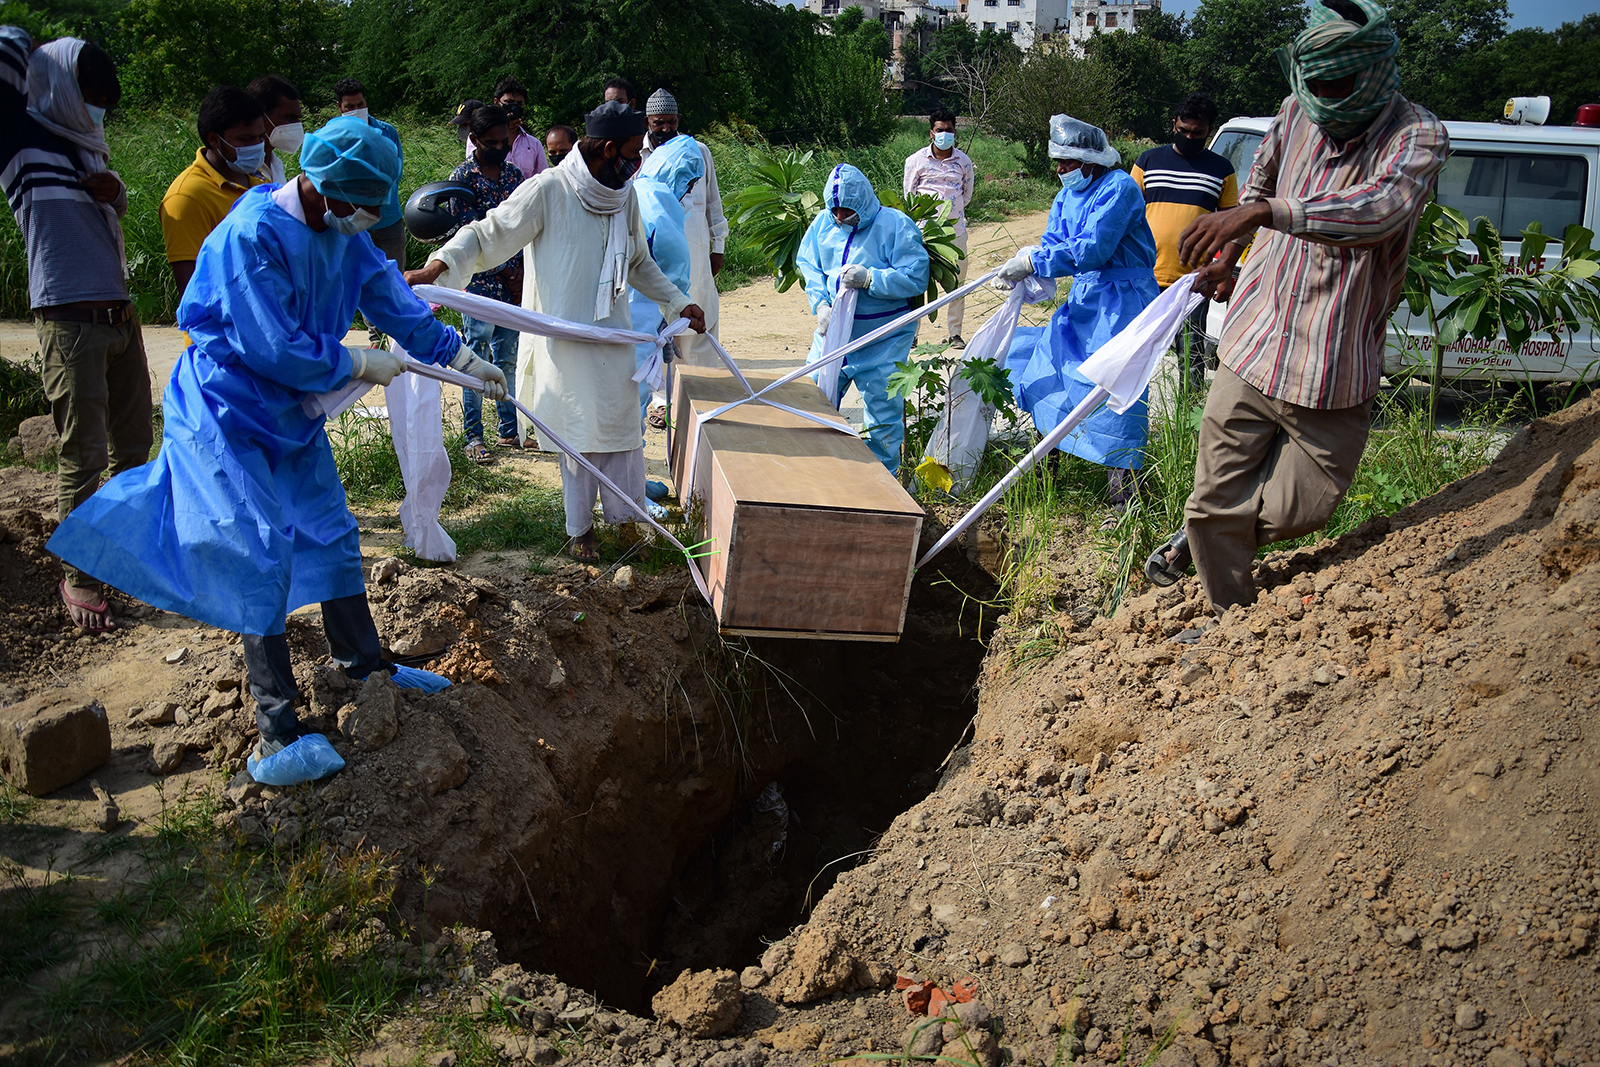 Relatives wearing protective suits as a precaution lower the body of a covid-19 victim for burial at a graveyard in New Delhi, India on September. 3.